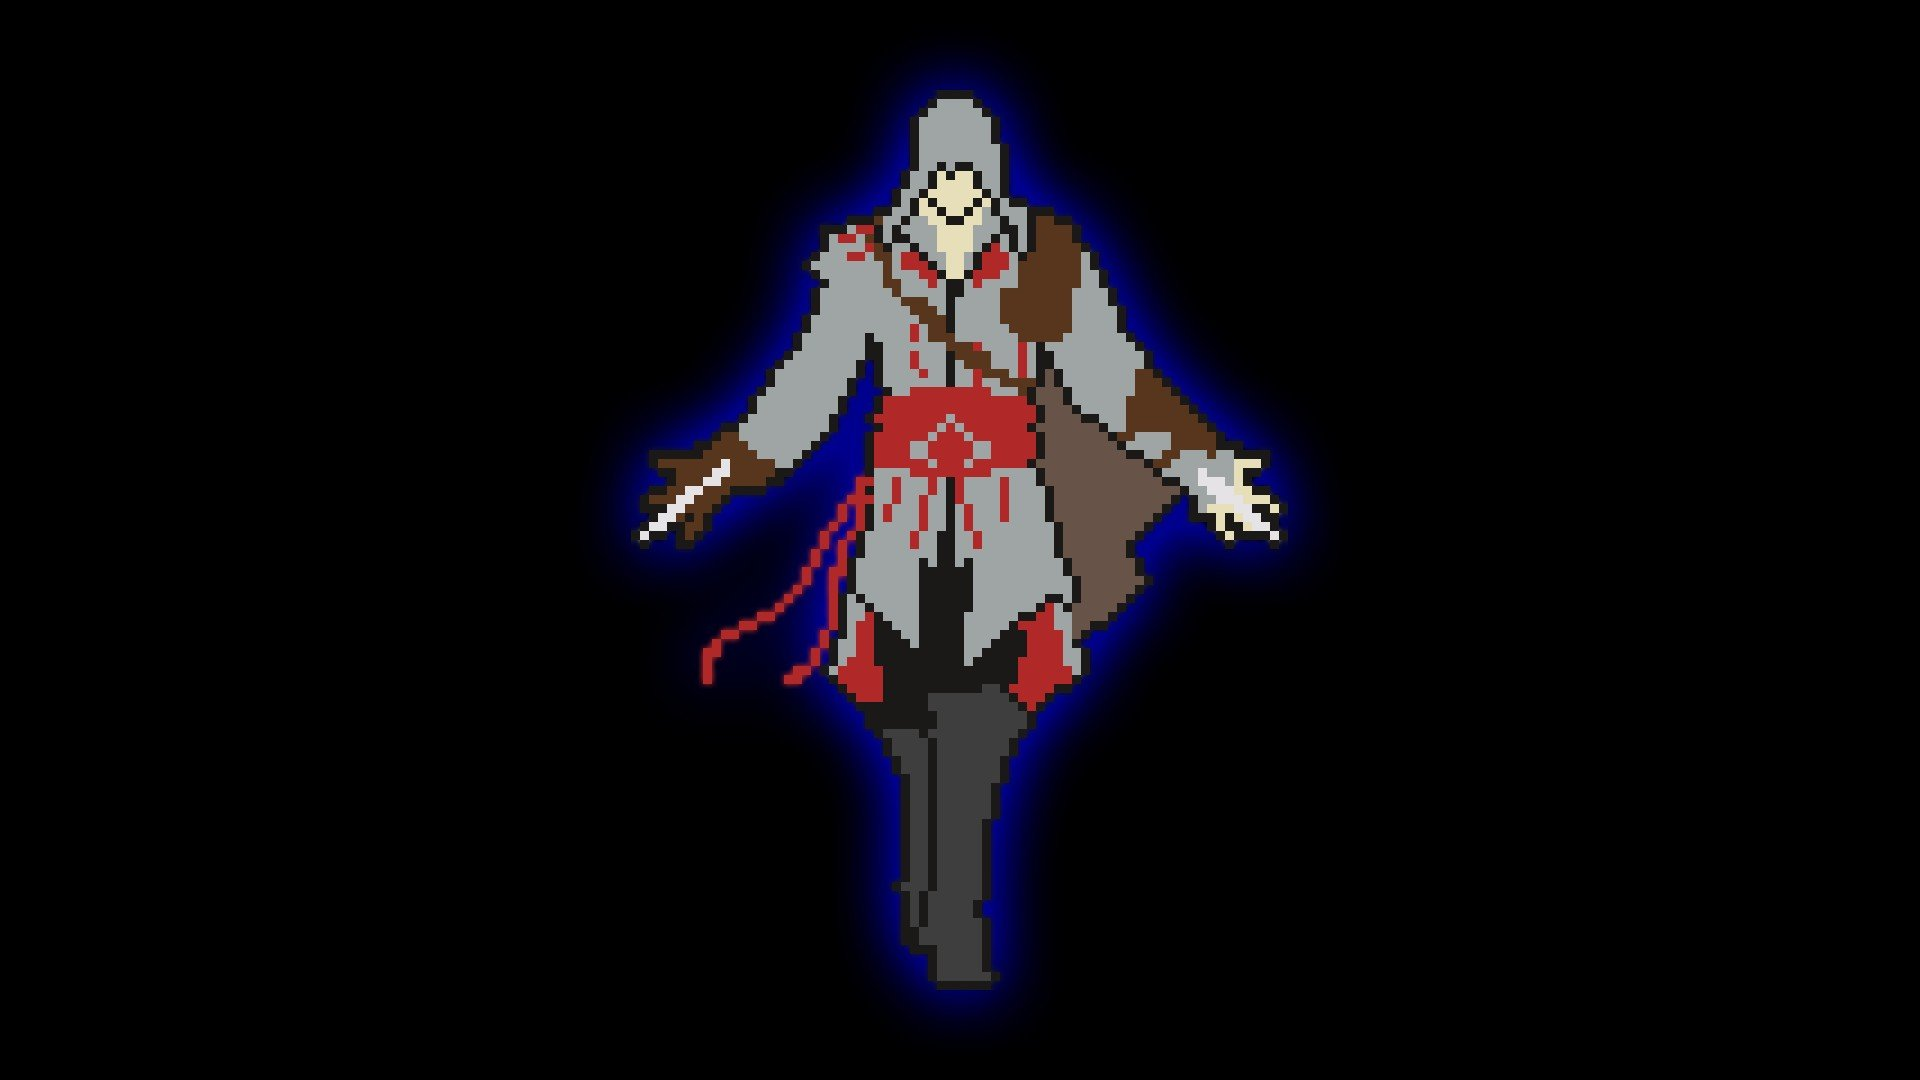 pixel art, Minimalism, Cubic, Assassin&039;s Creed Wallpaper